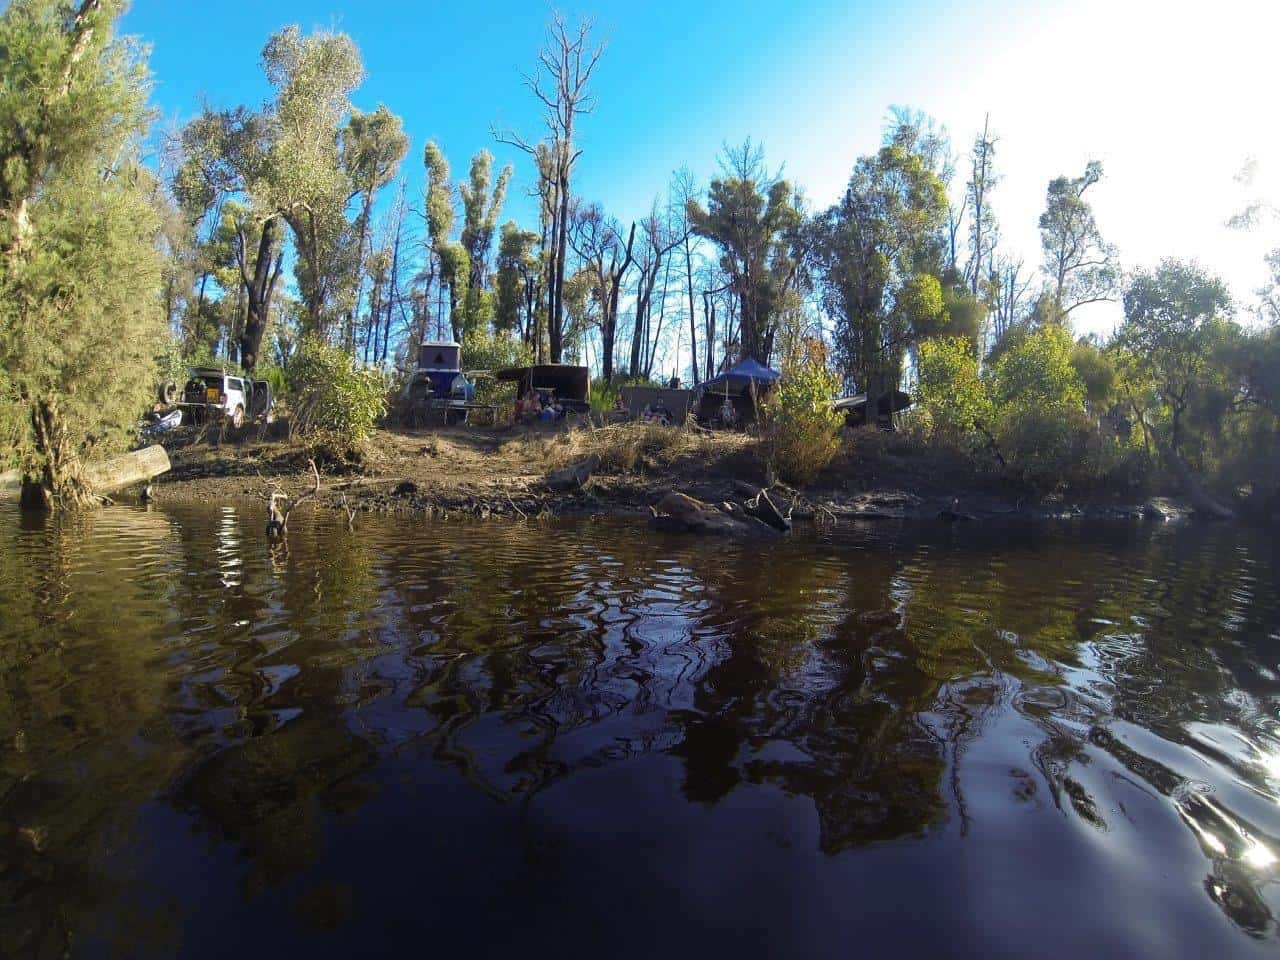 Camping along the Murray River